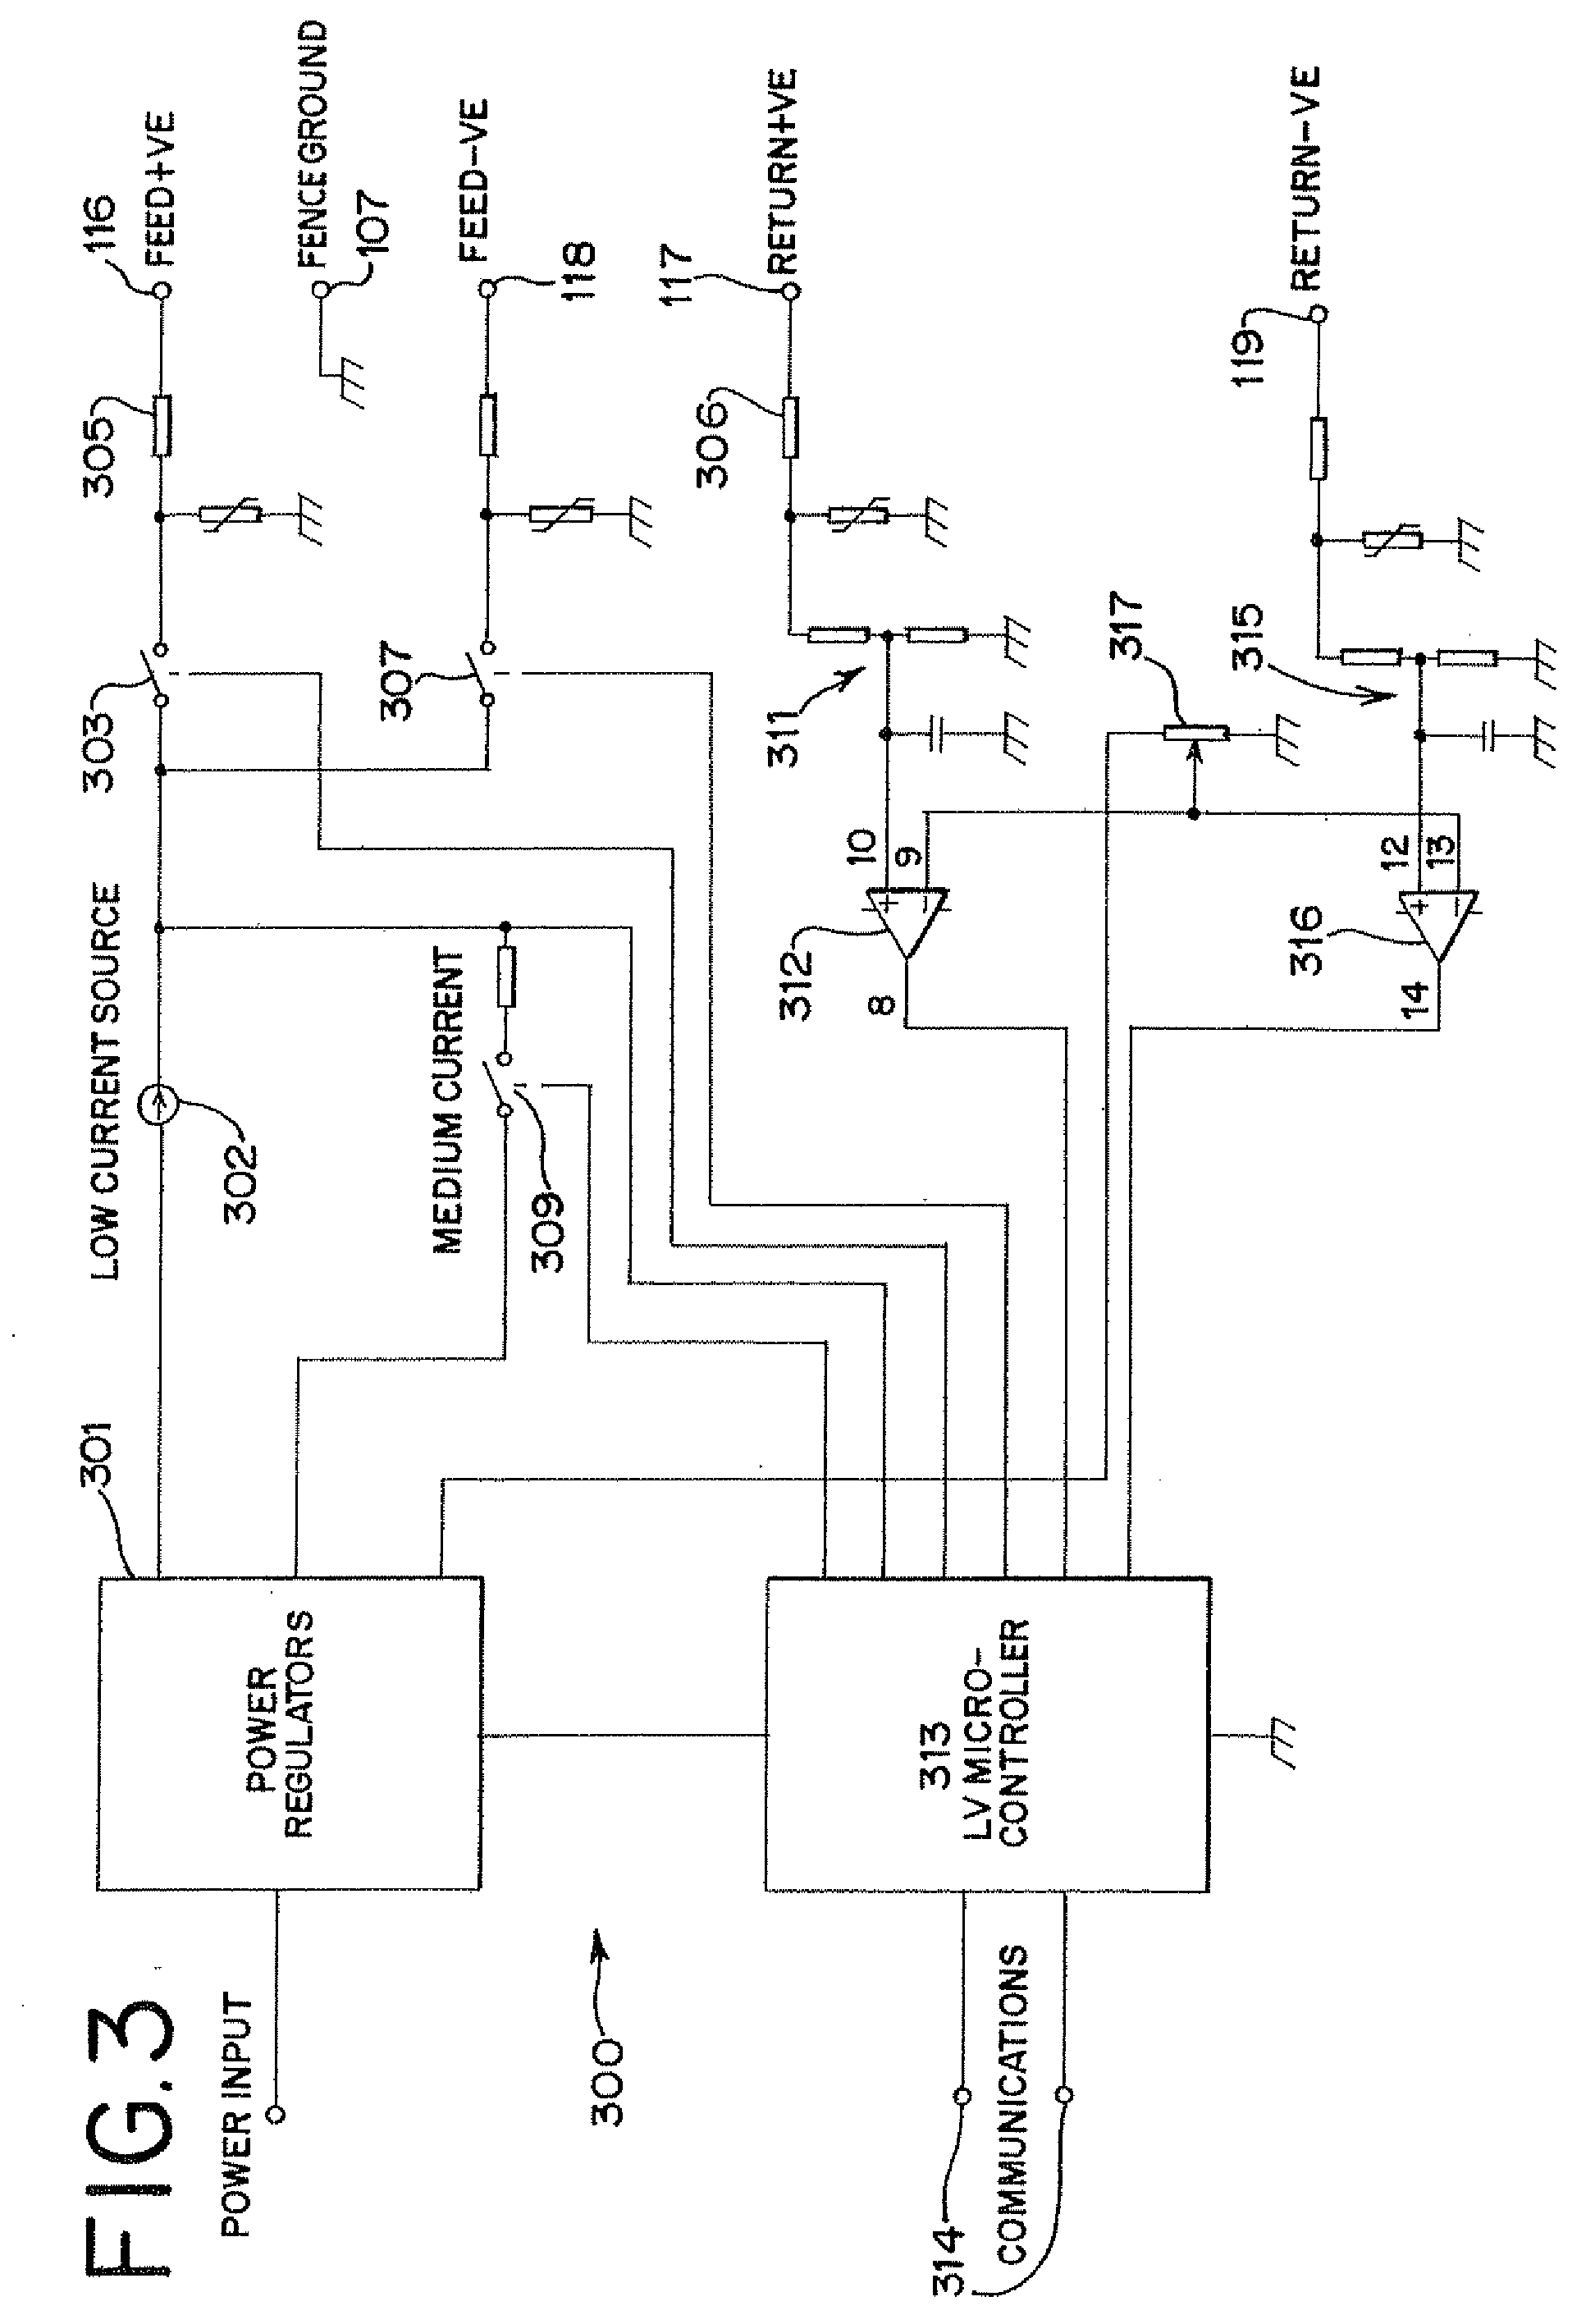 N Scale Wiring Diagrams further Delta To Transformer together with 5 7l Volvo Penta Marine Engine Schematic additionally Delta To Transformer as well Elephant Electric Fence Circuit Diagram. on solar farm wiring